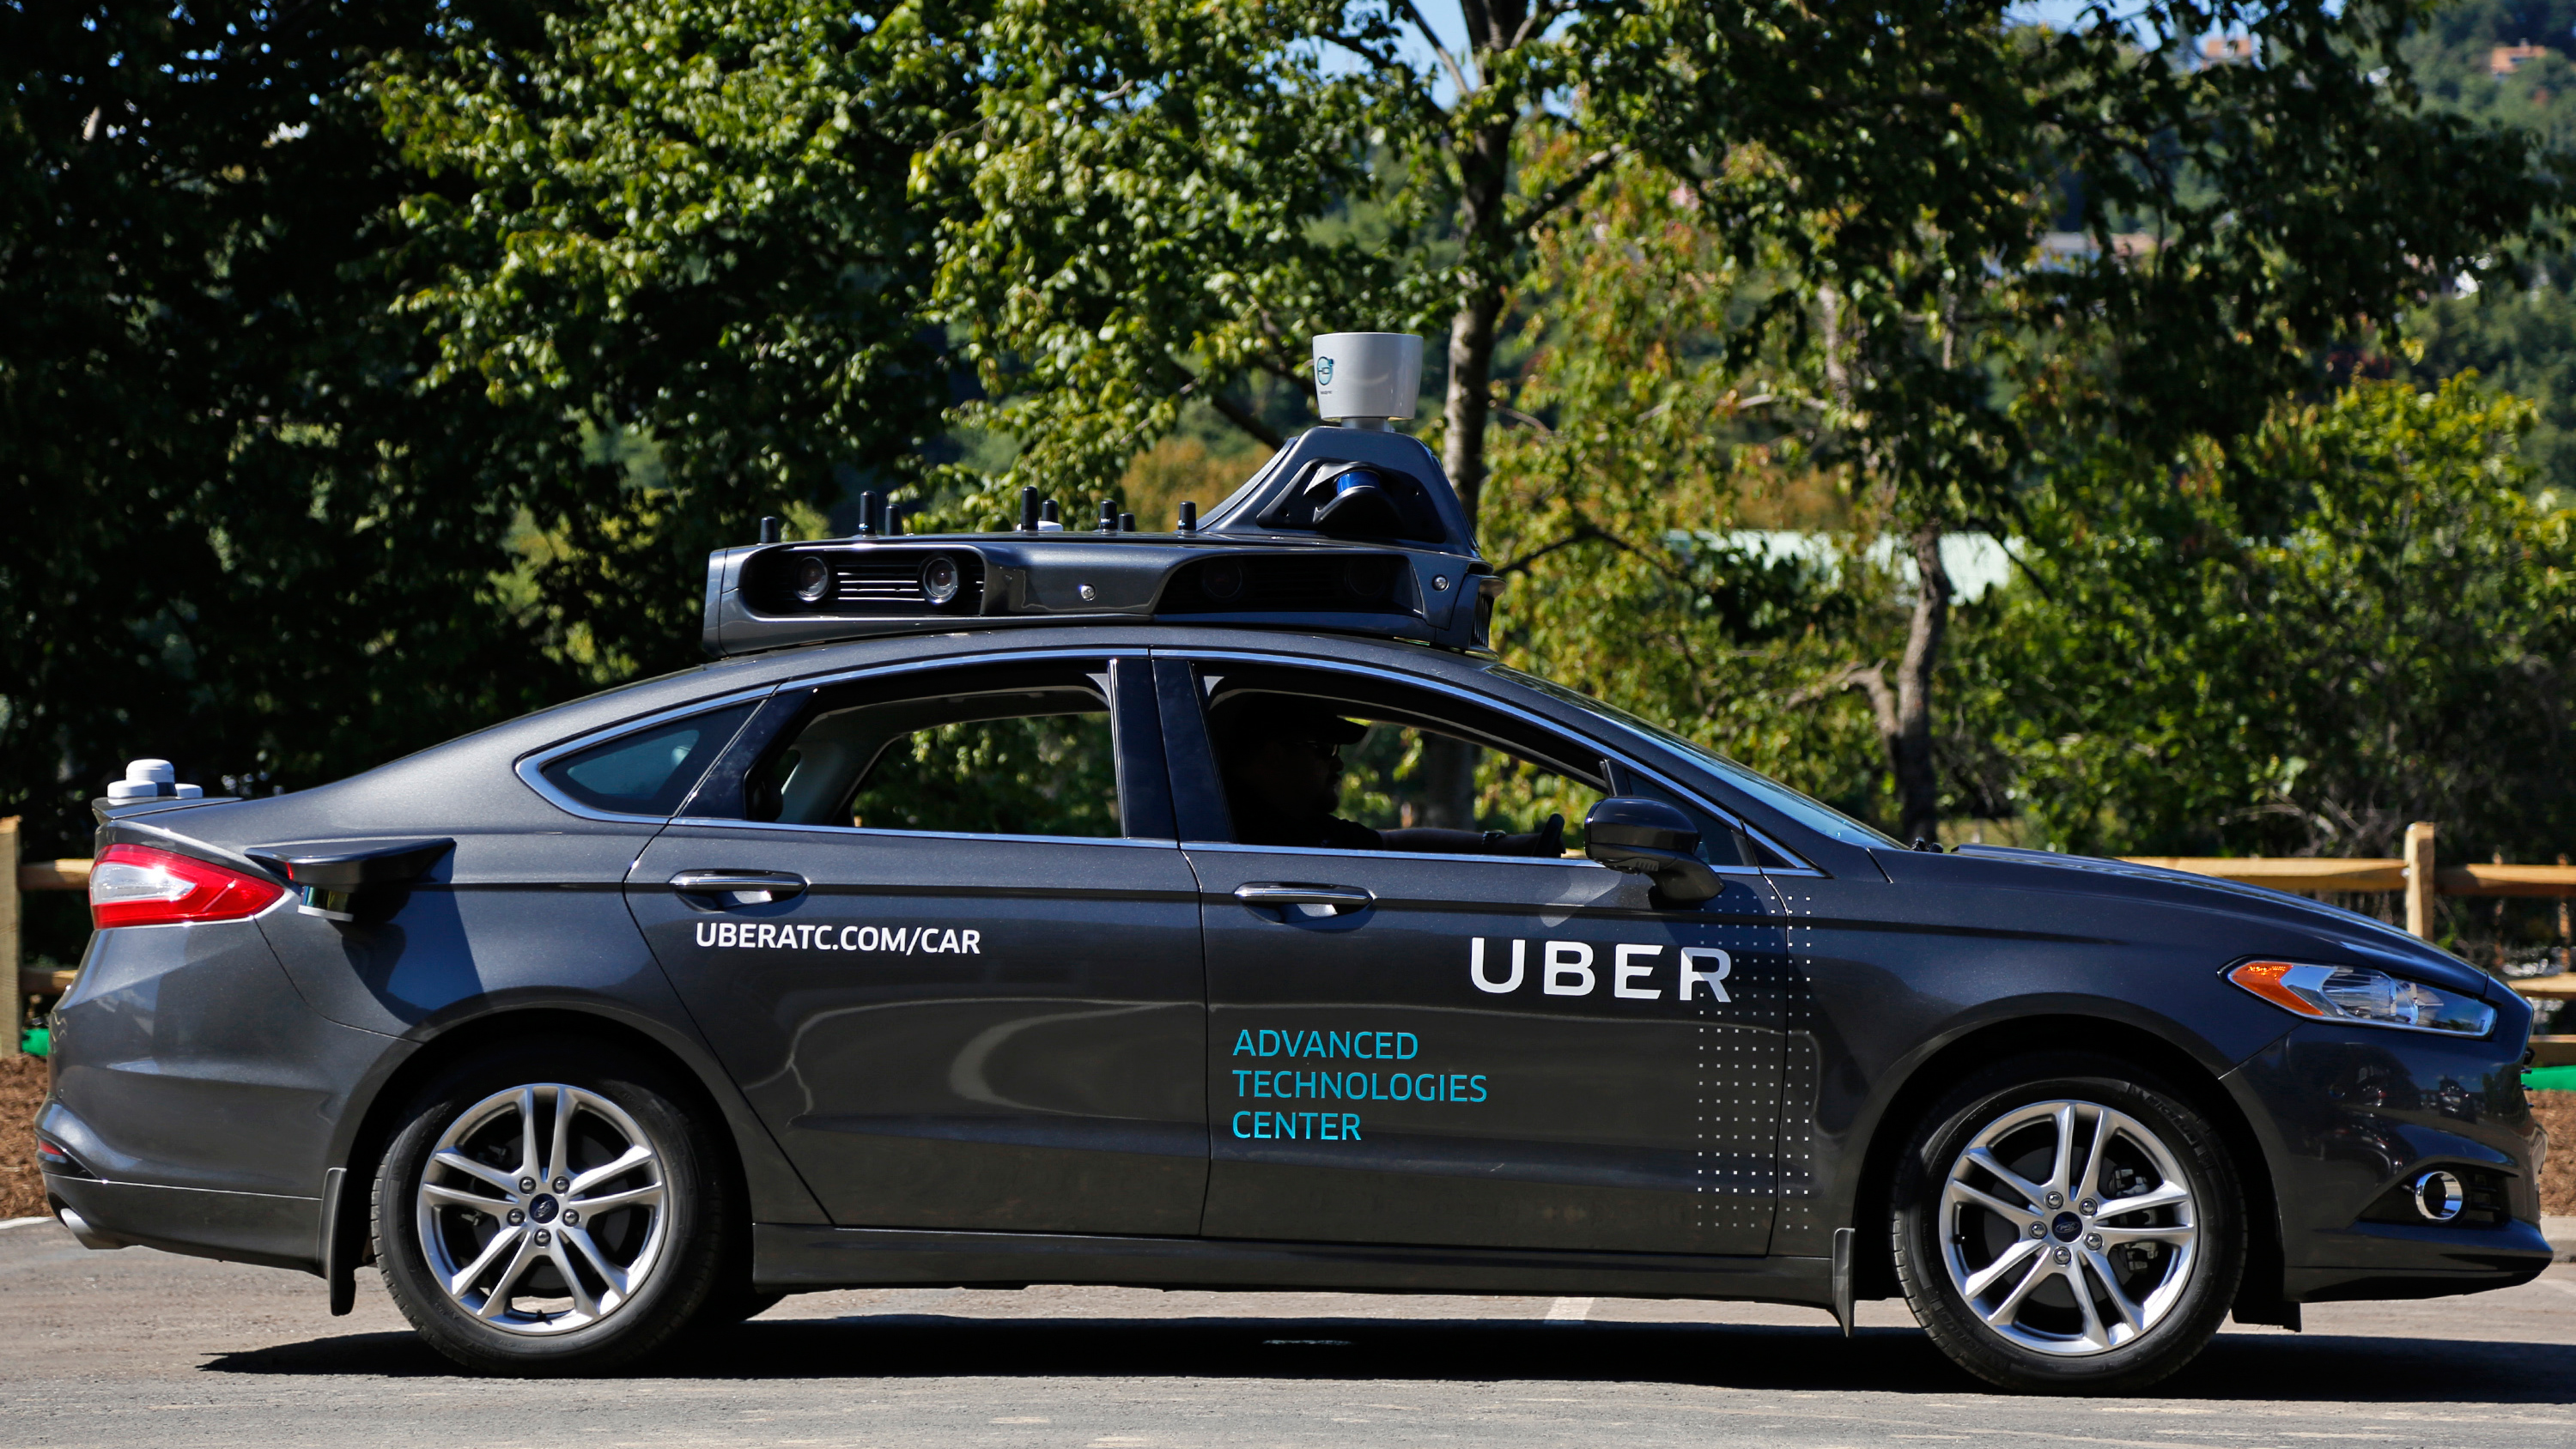 What Kind Of Cars Does Uber Use - What Kind Of Cars Does Uber Use New Car Release Information